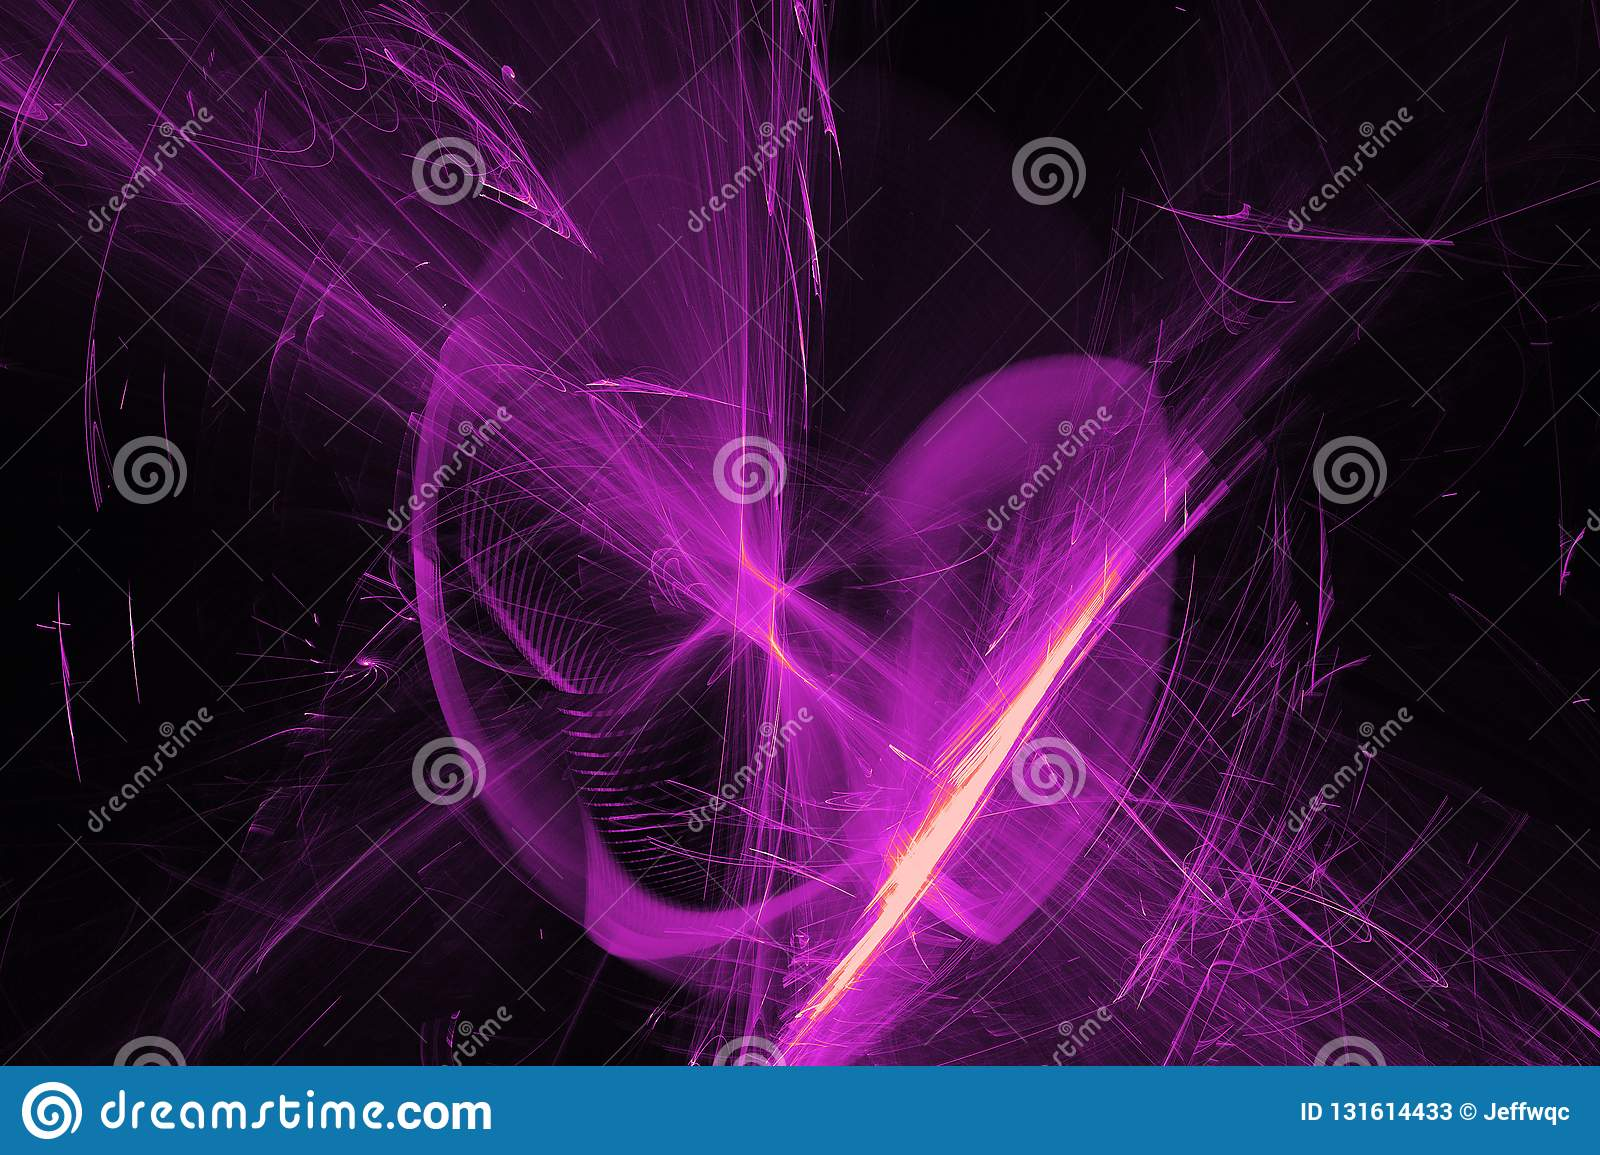 Abstract Patterns On Dark Background With Purple Lines Curves Particles